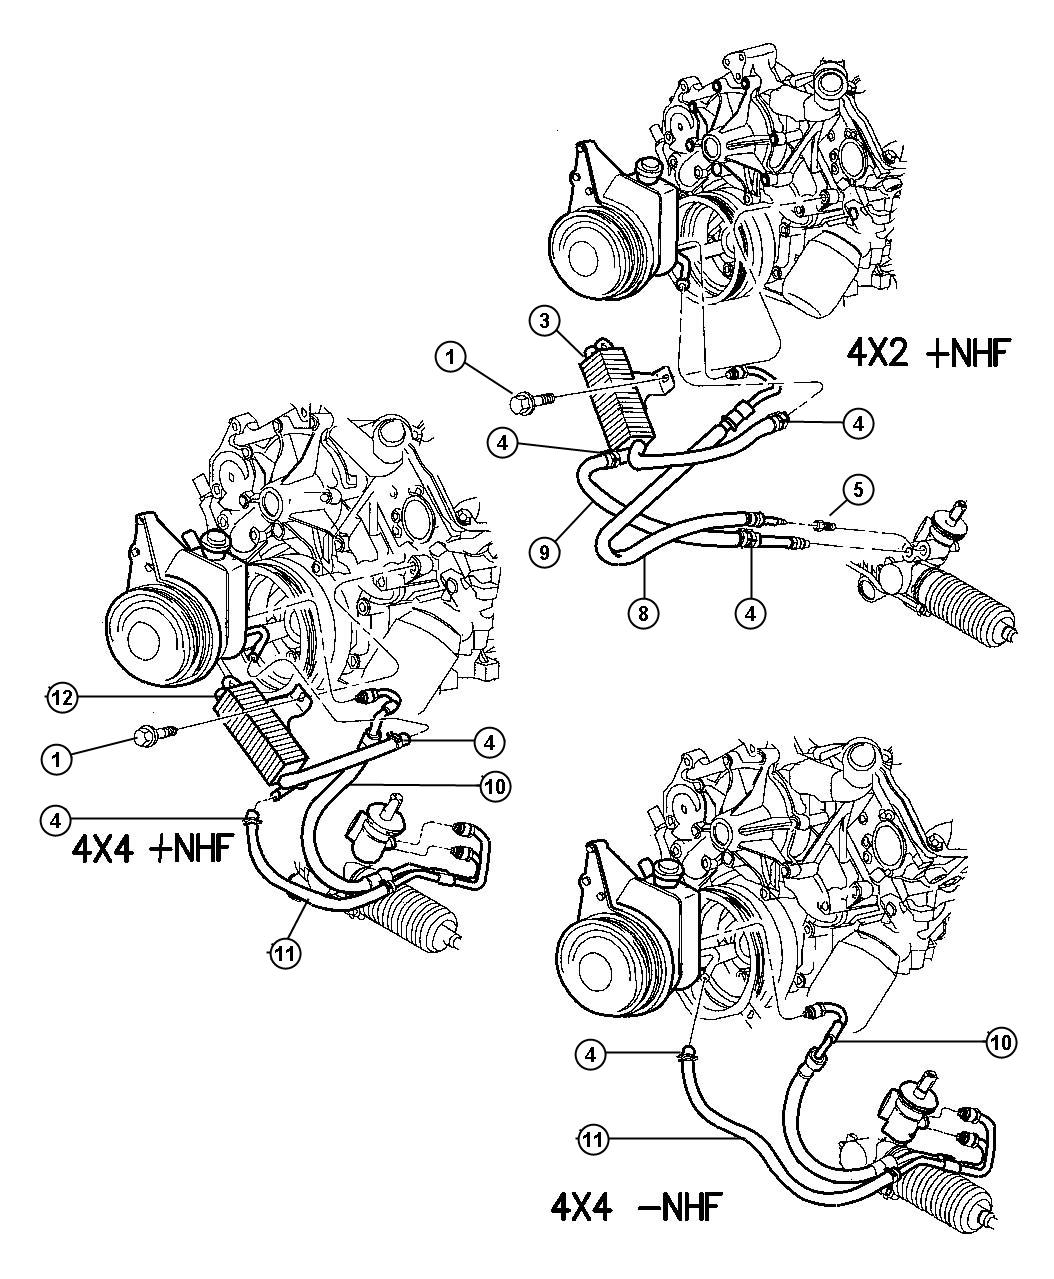 99 Dodge 5 9 Liter Engine Diagram, 99, Free Engine Image